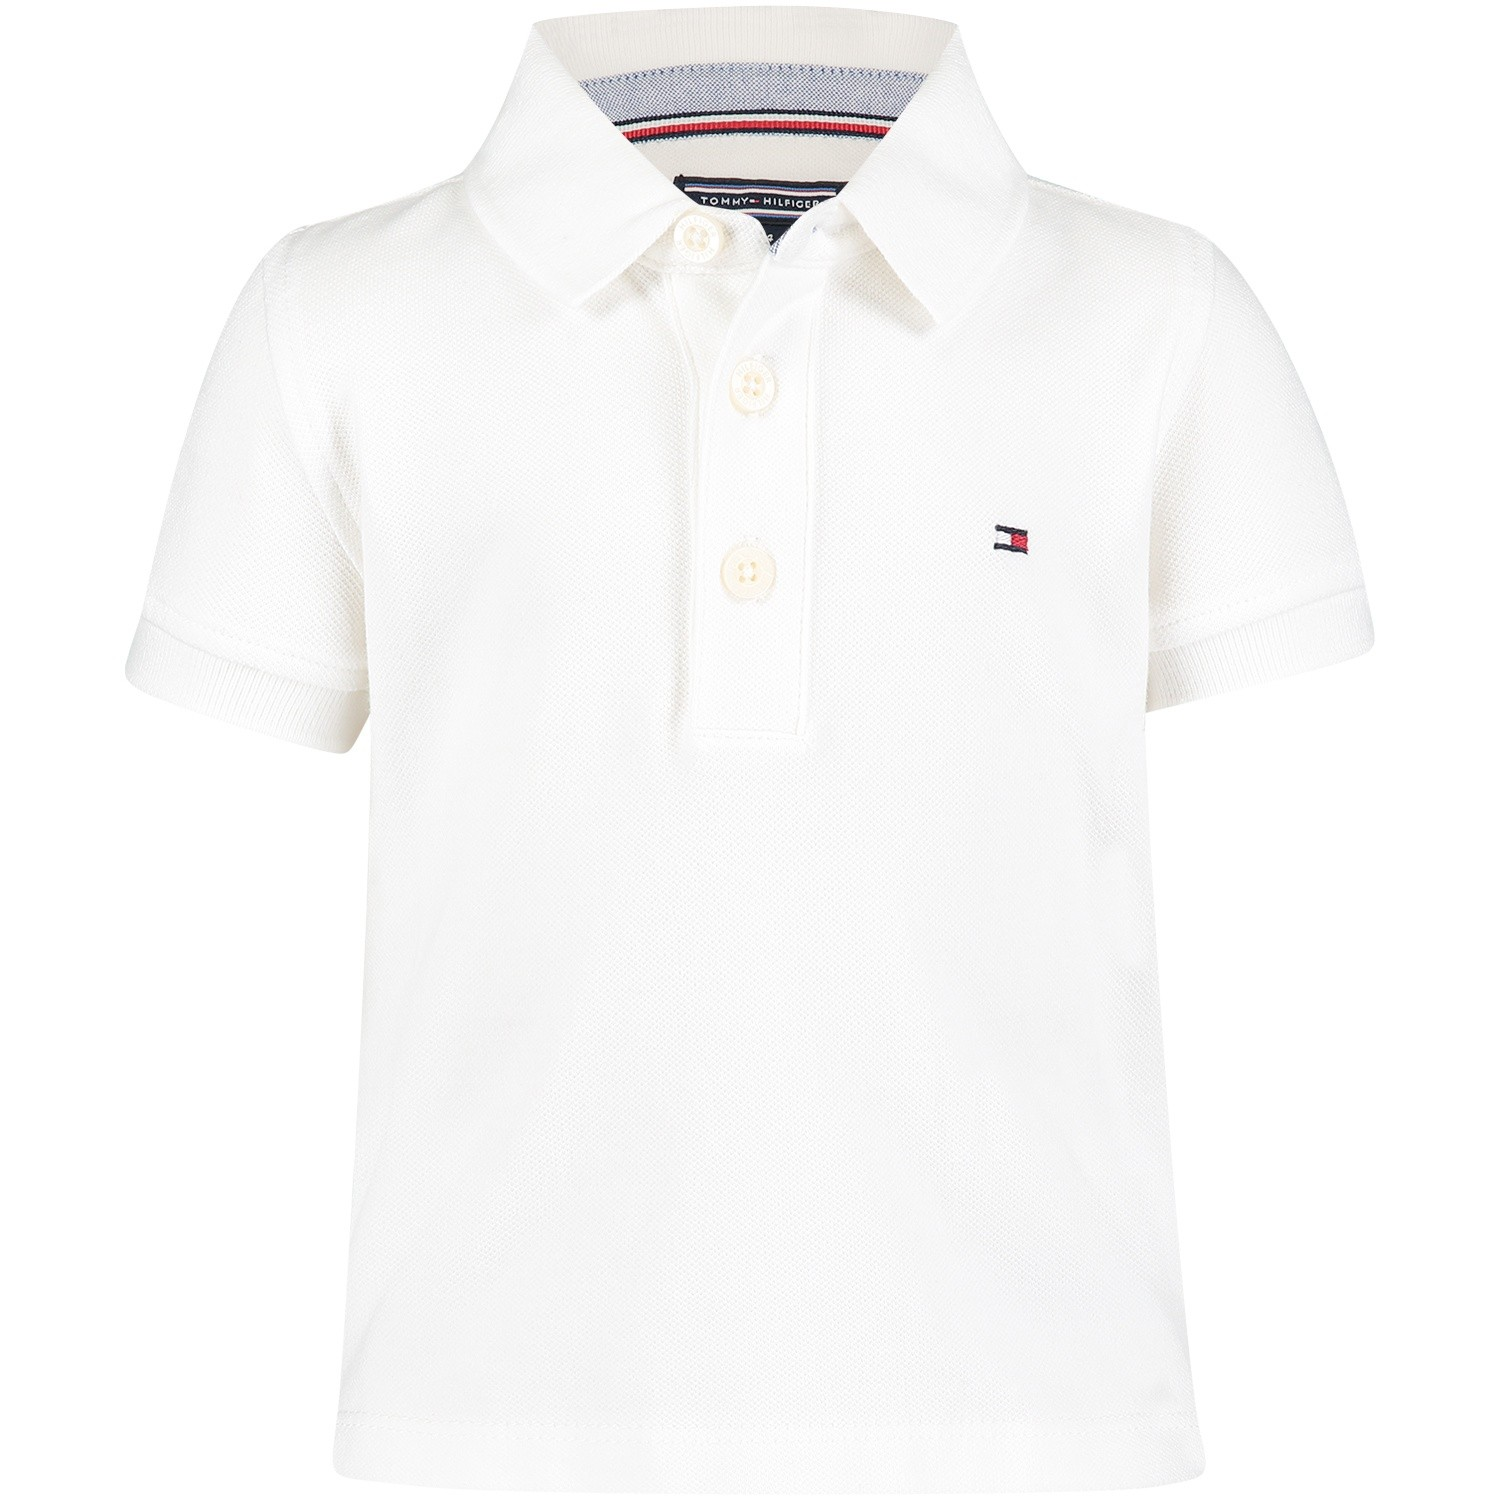 Picture of Tommy Hilfiger KB0KB03975B baby poloshirt white